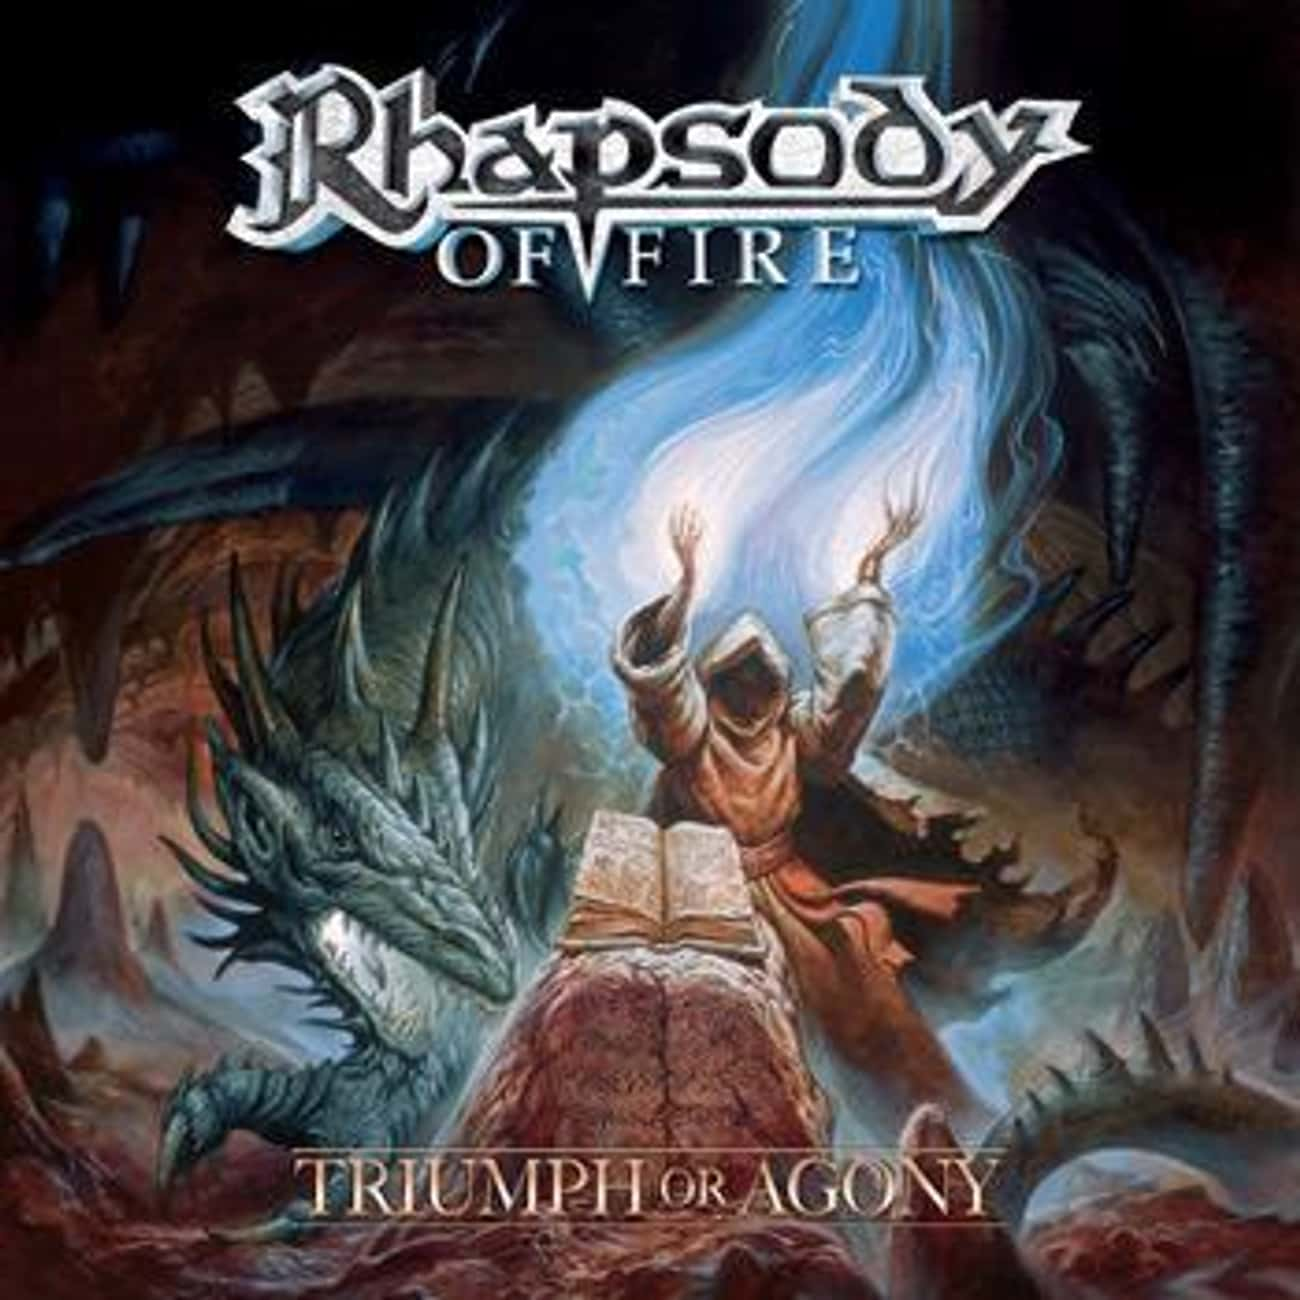 Triumph or Agony is listed (or ranked) 4 on the list The Best Rhapsody Of Fire Albums of All Time